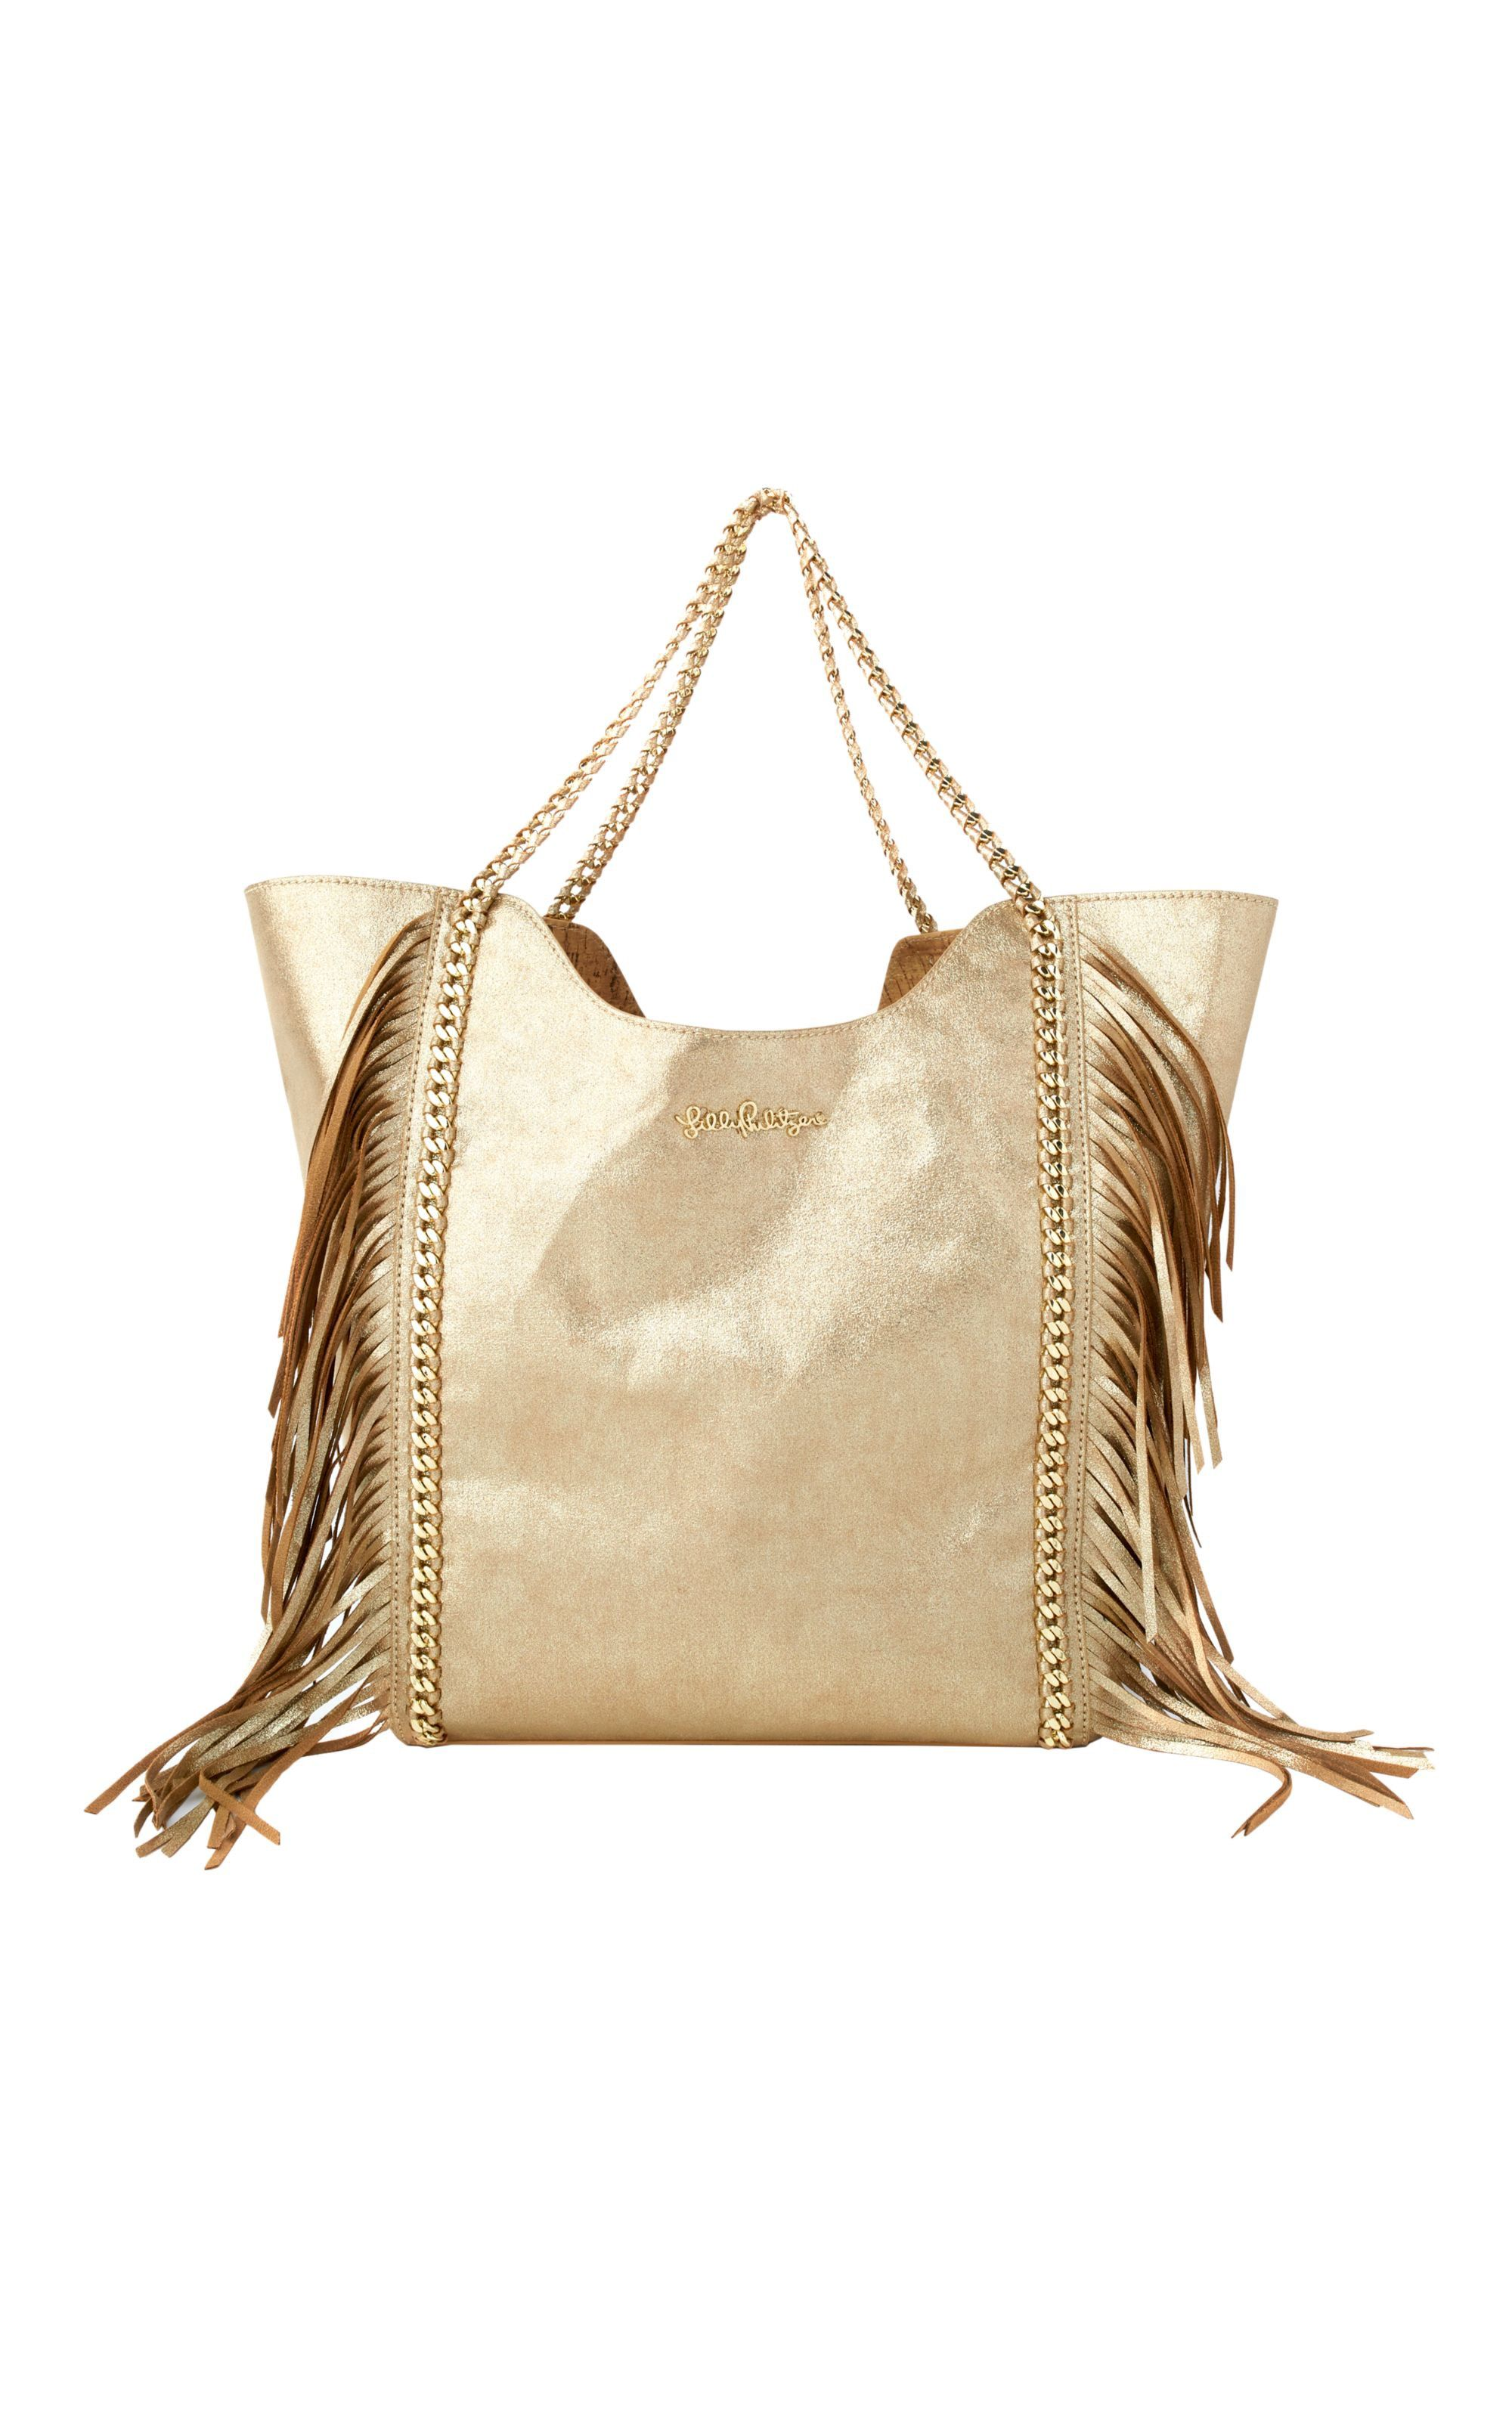 fdce857fca LILLY PULITZER FRINGE CRUISE TOTE BAG - Gold Metallic.  lillypulitzer  bags   hand bags  suede  tote  metallic